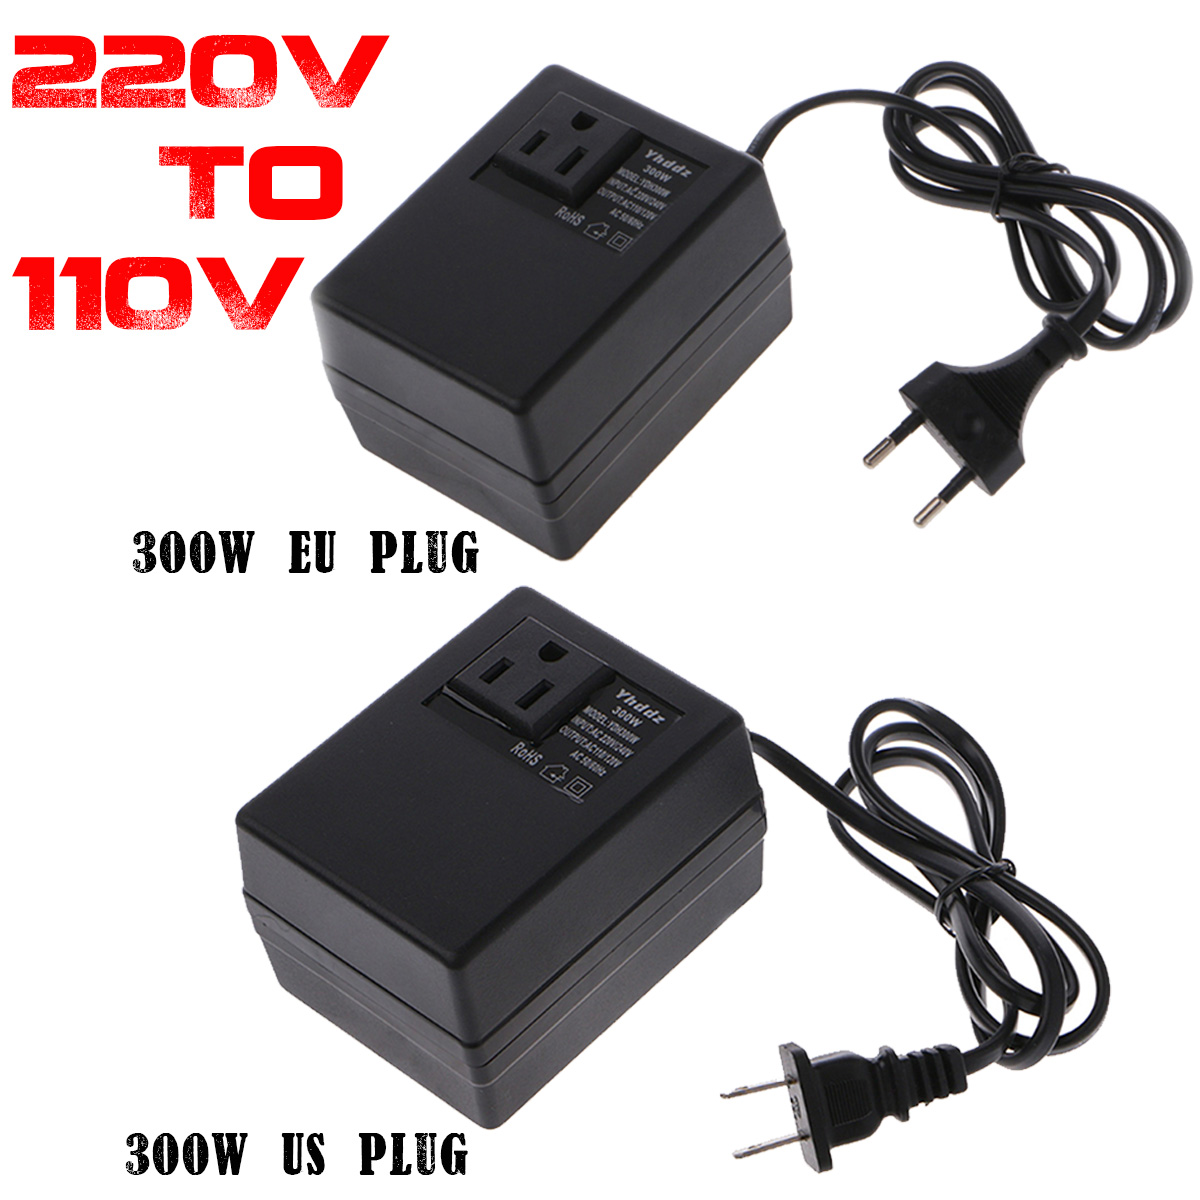 NEW 300W/<font><b>200W</b></font> <font><b>220V</b></font> <font><b>To</b></font> <font><b>110V</b></font> AC Step Down Travel Voltage Transformer Converter EU Plug Adapter image